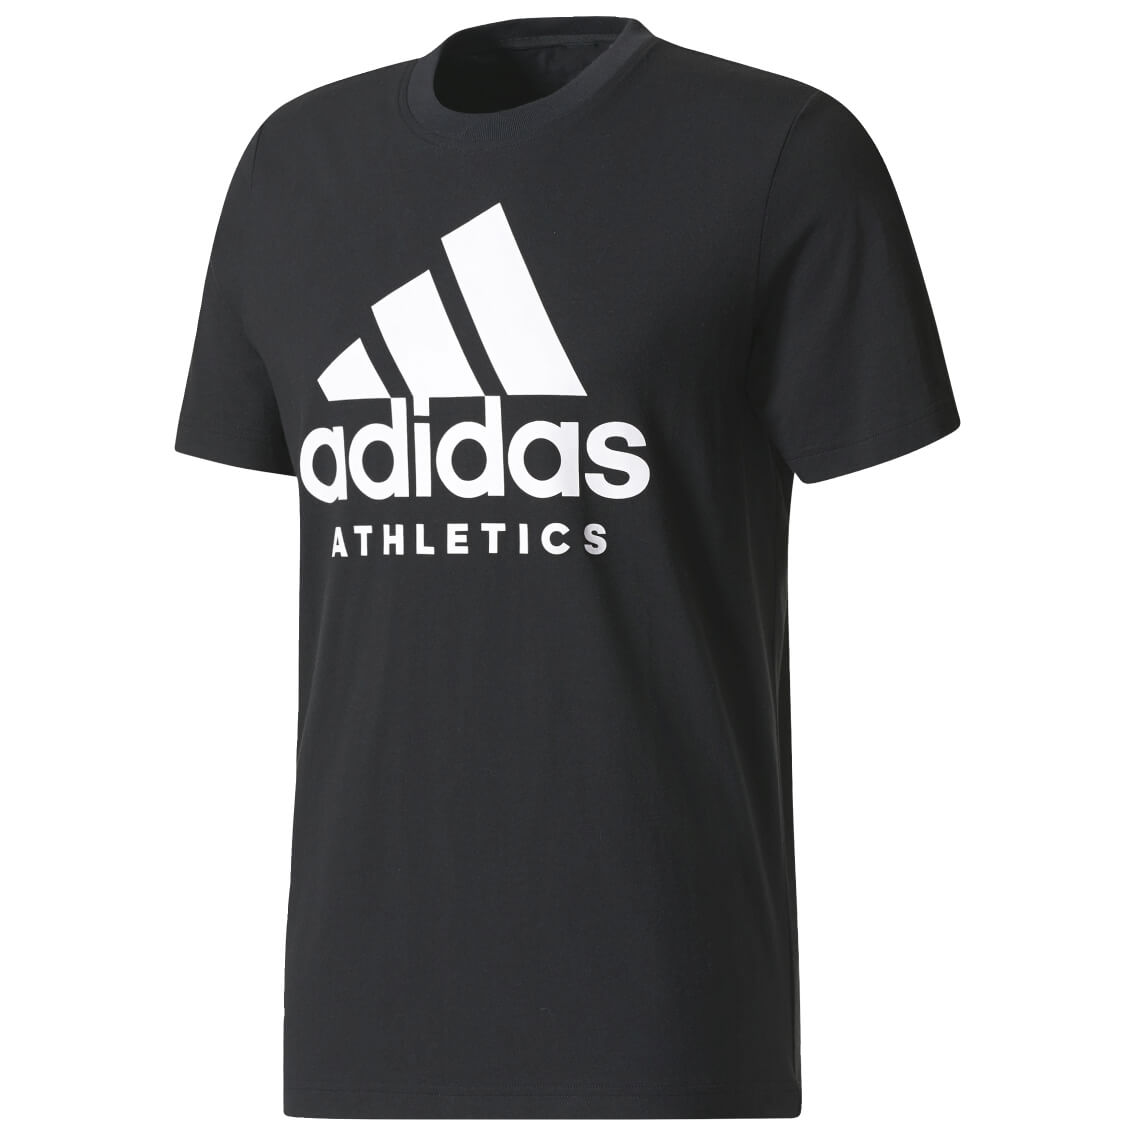 Adidas sport id branded tee t shirt men 39 s buy online for Buy branded shirts online